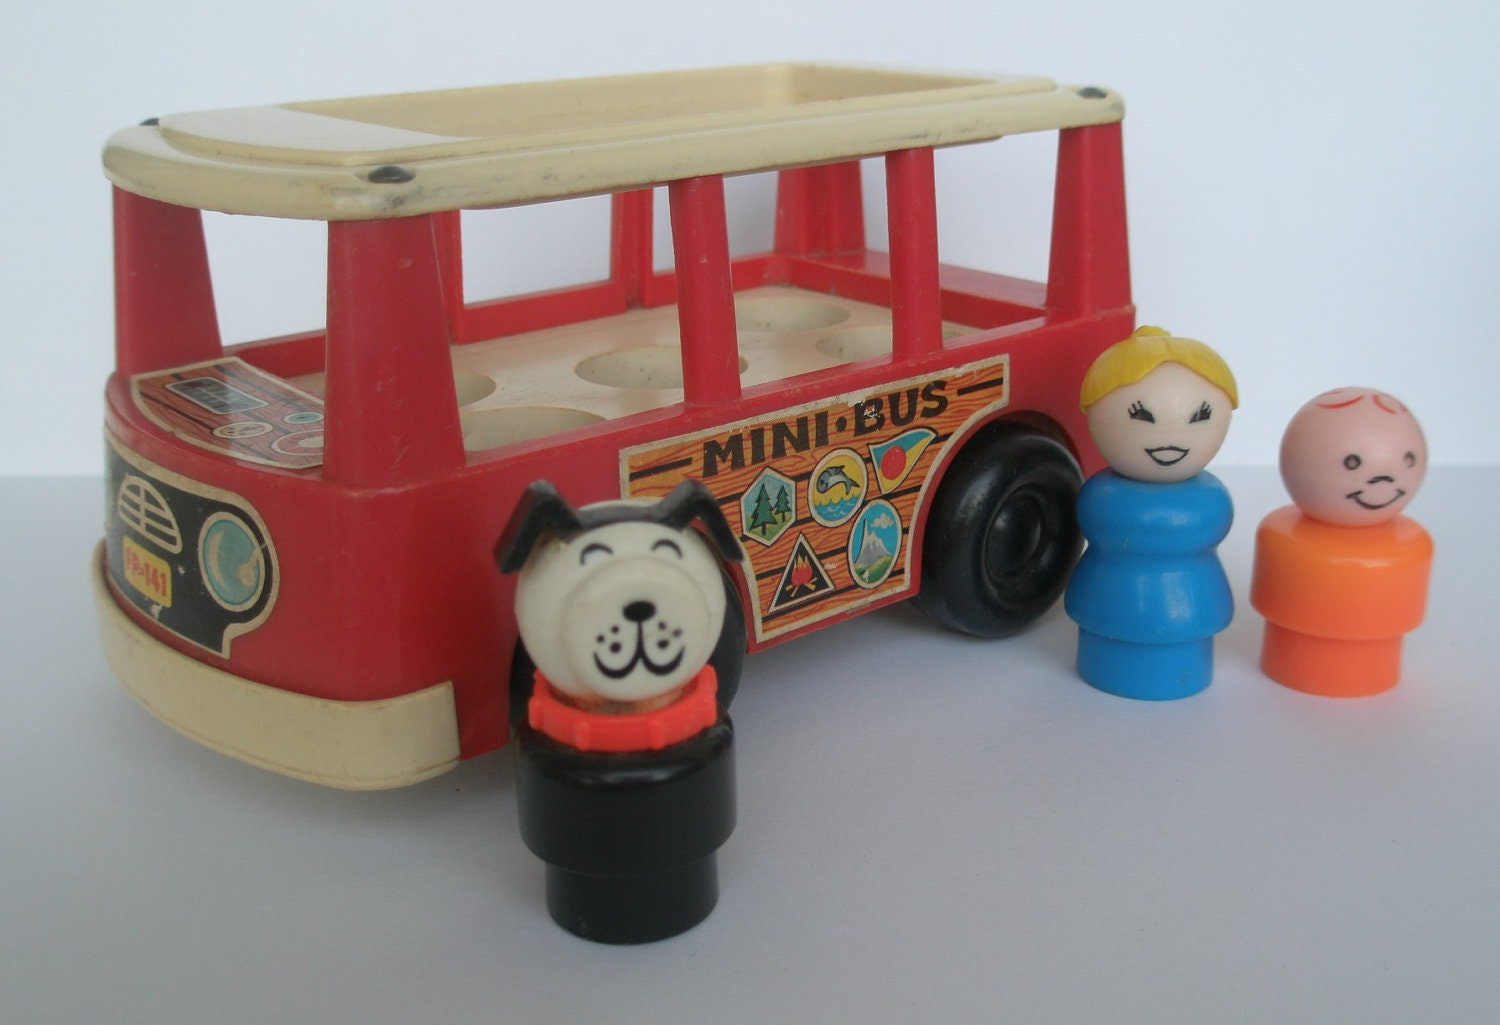 Old Toys From The 70s : Vintage s toys pictures to pin on pinterest daddy